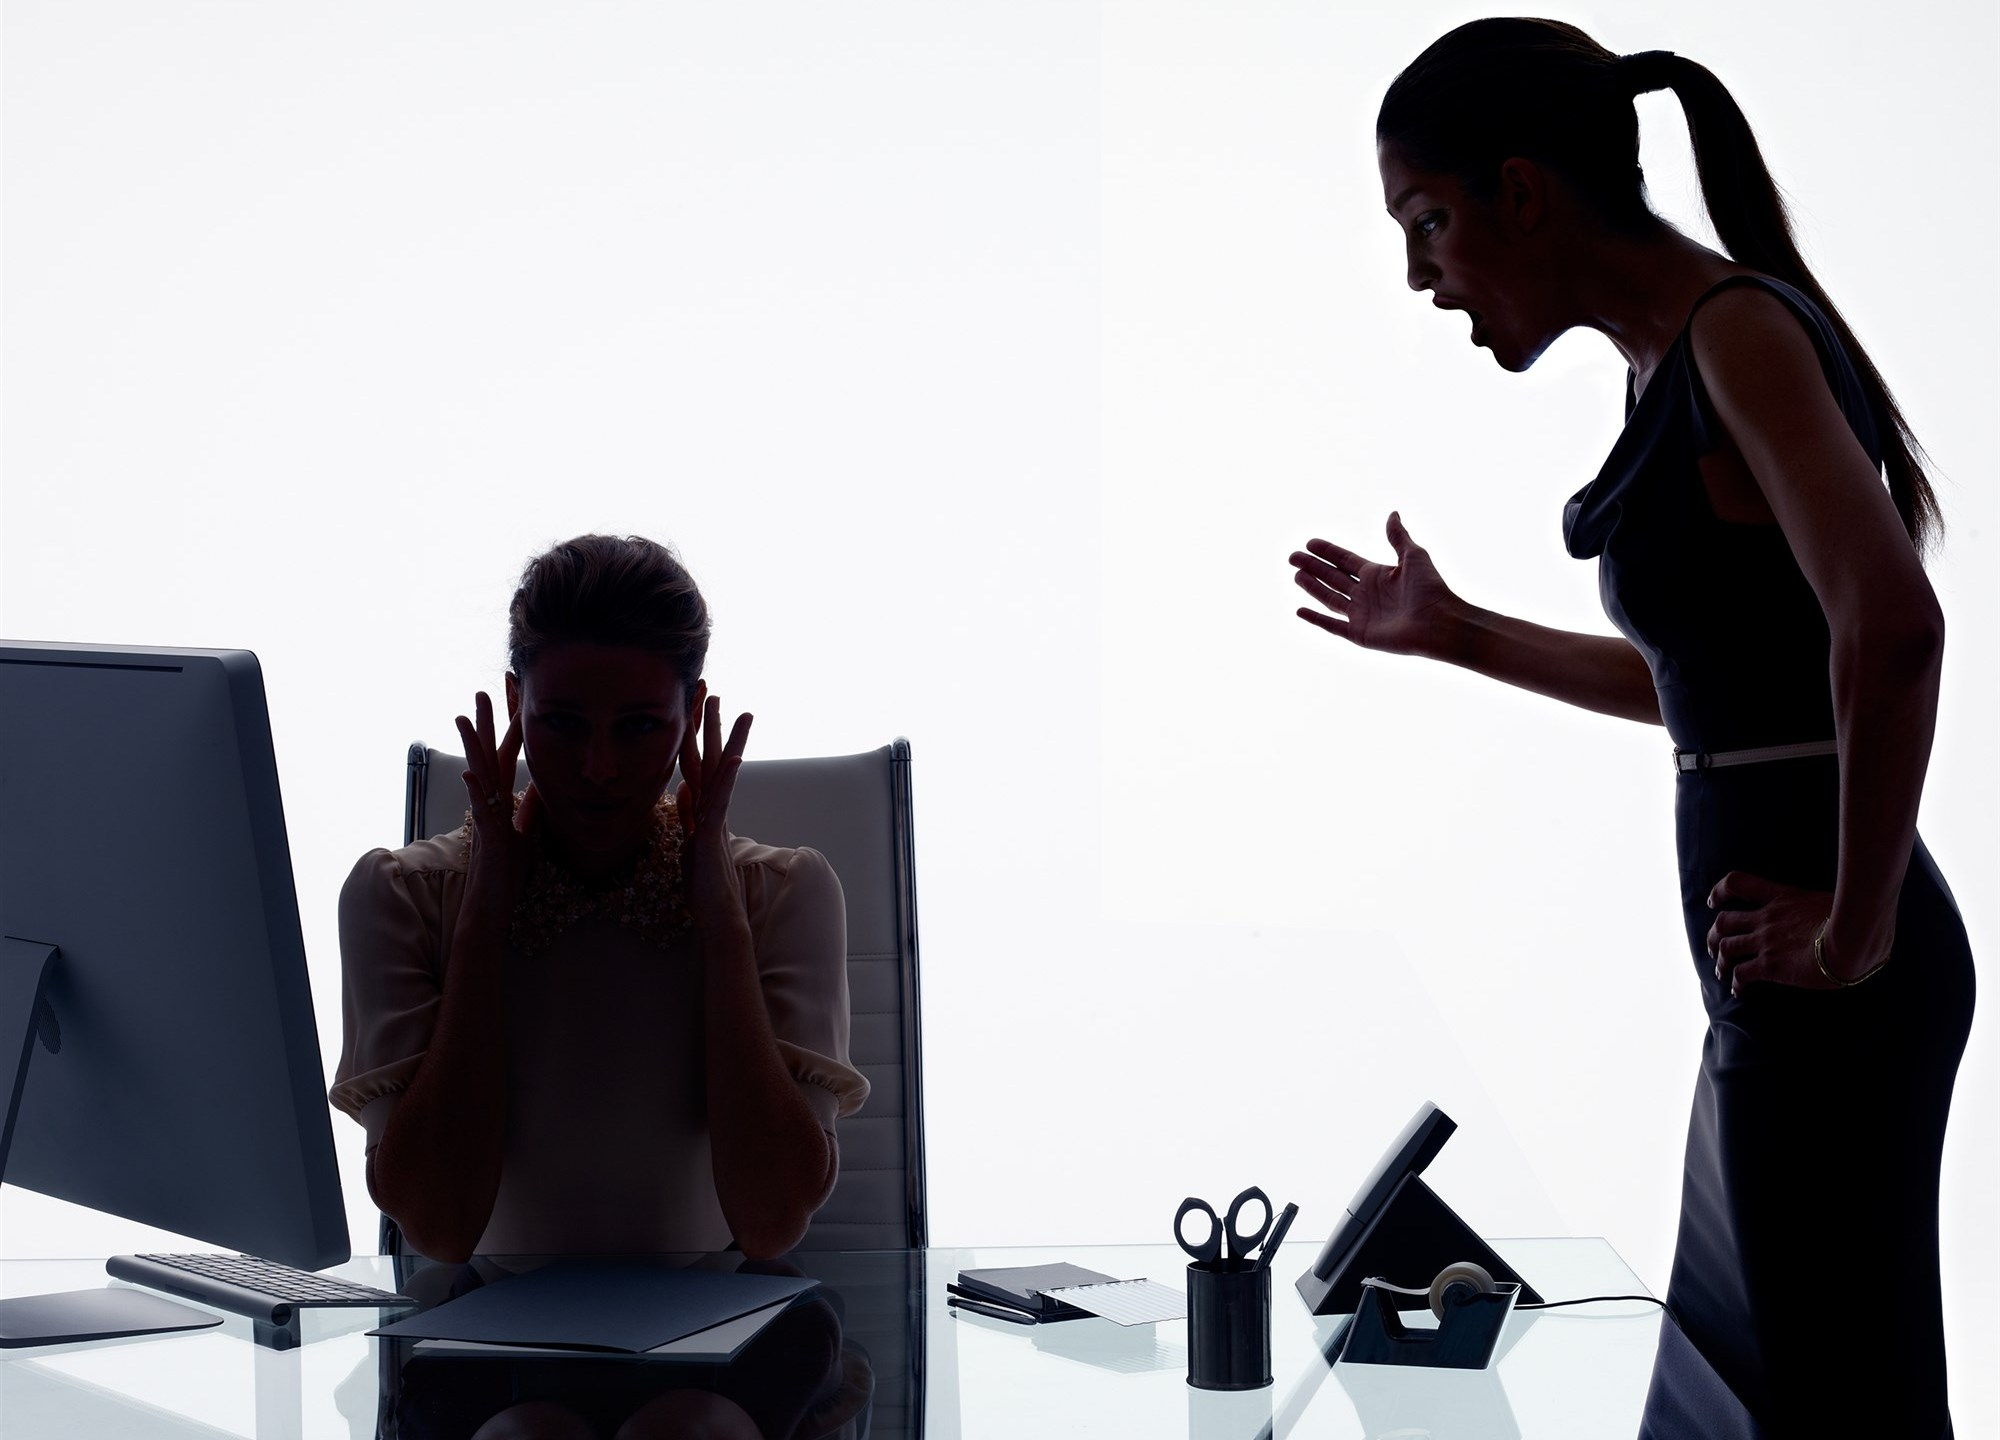 181119-workplace-bullying-silhouette-ac-631p_dd75375bba3e3964c62e78ae3826ade4.fit-2000w_1553615491806.jpg